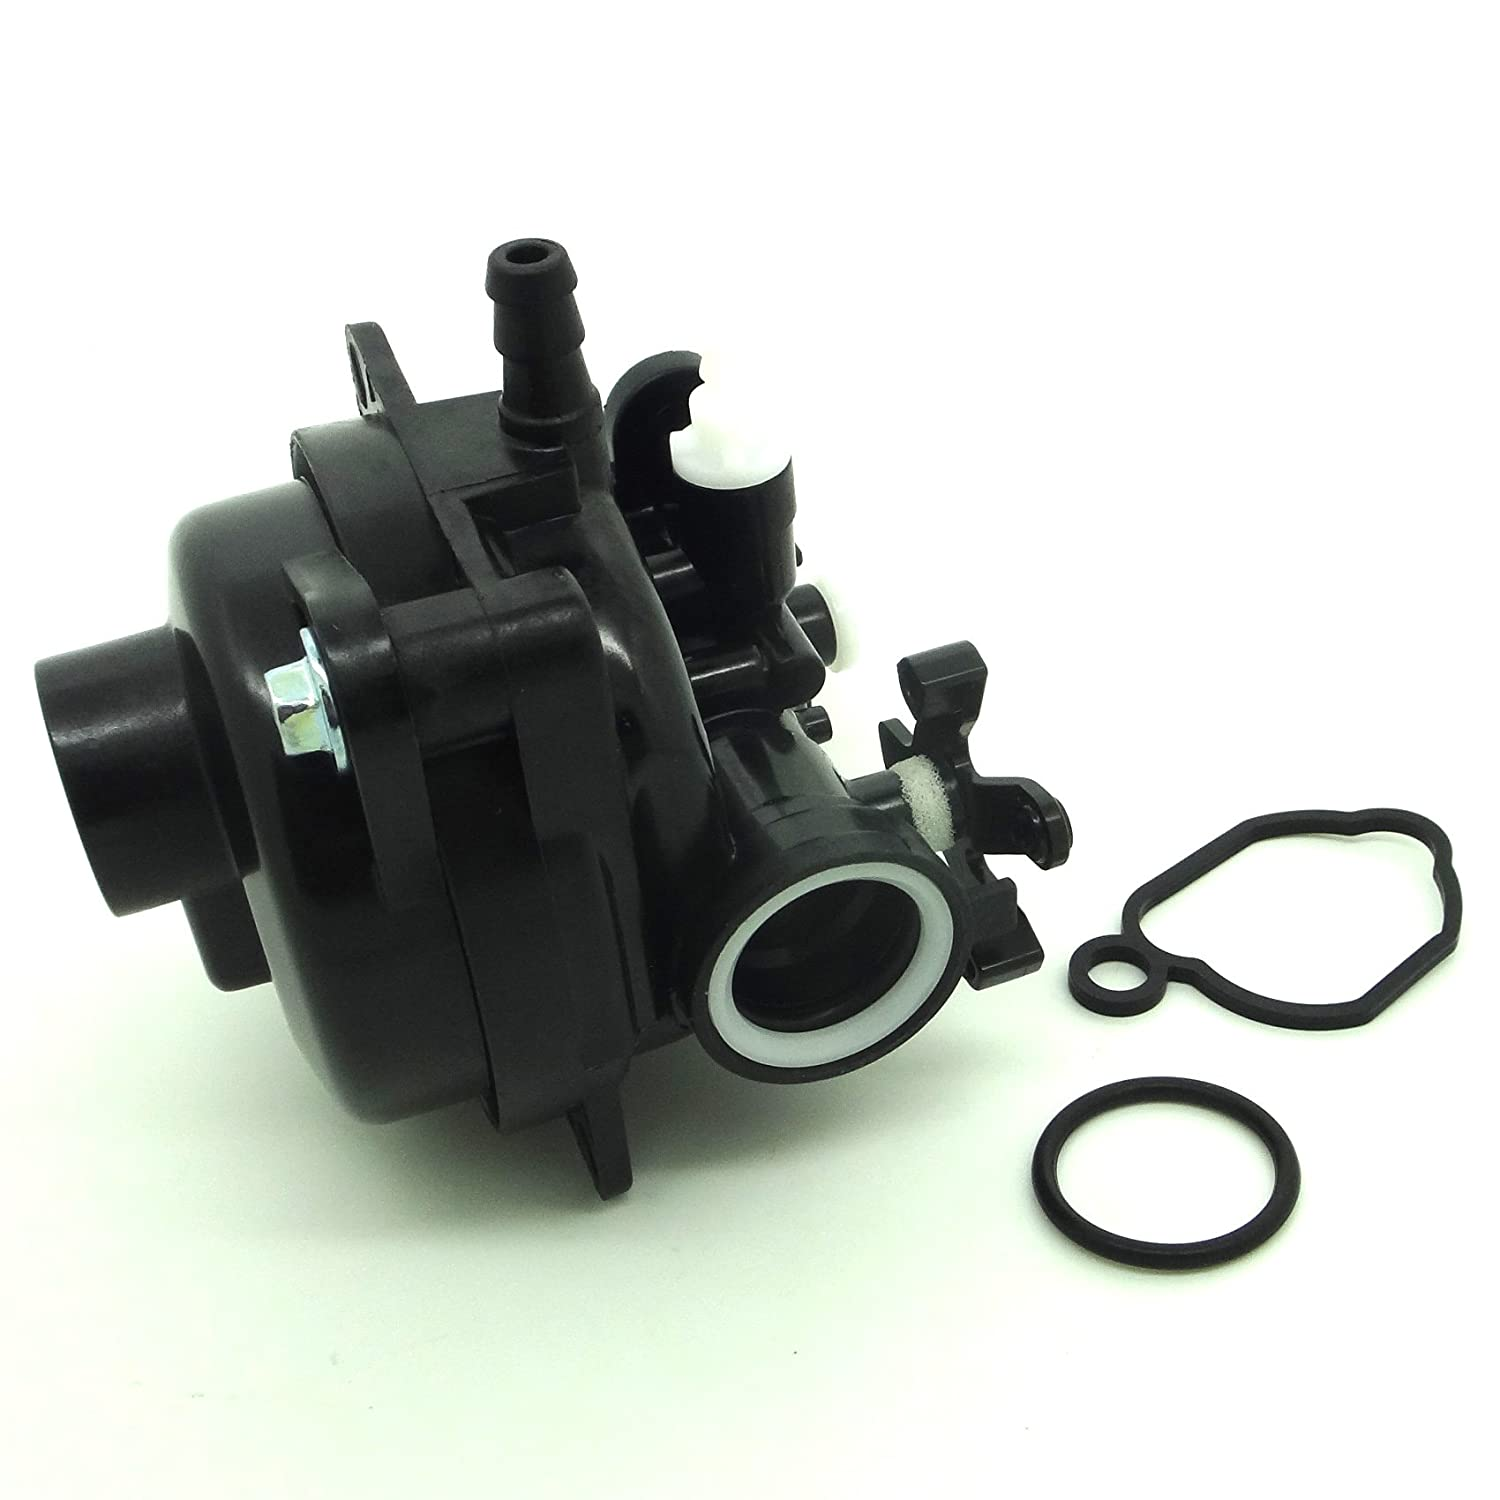 Conpus 799583 Carburetor Carb Replacement with Gasket Kit for Most Briggs /& Stratton 09P602 Vertical Engines